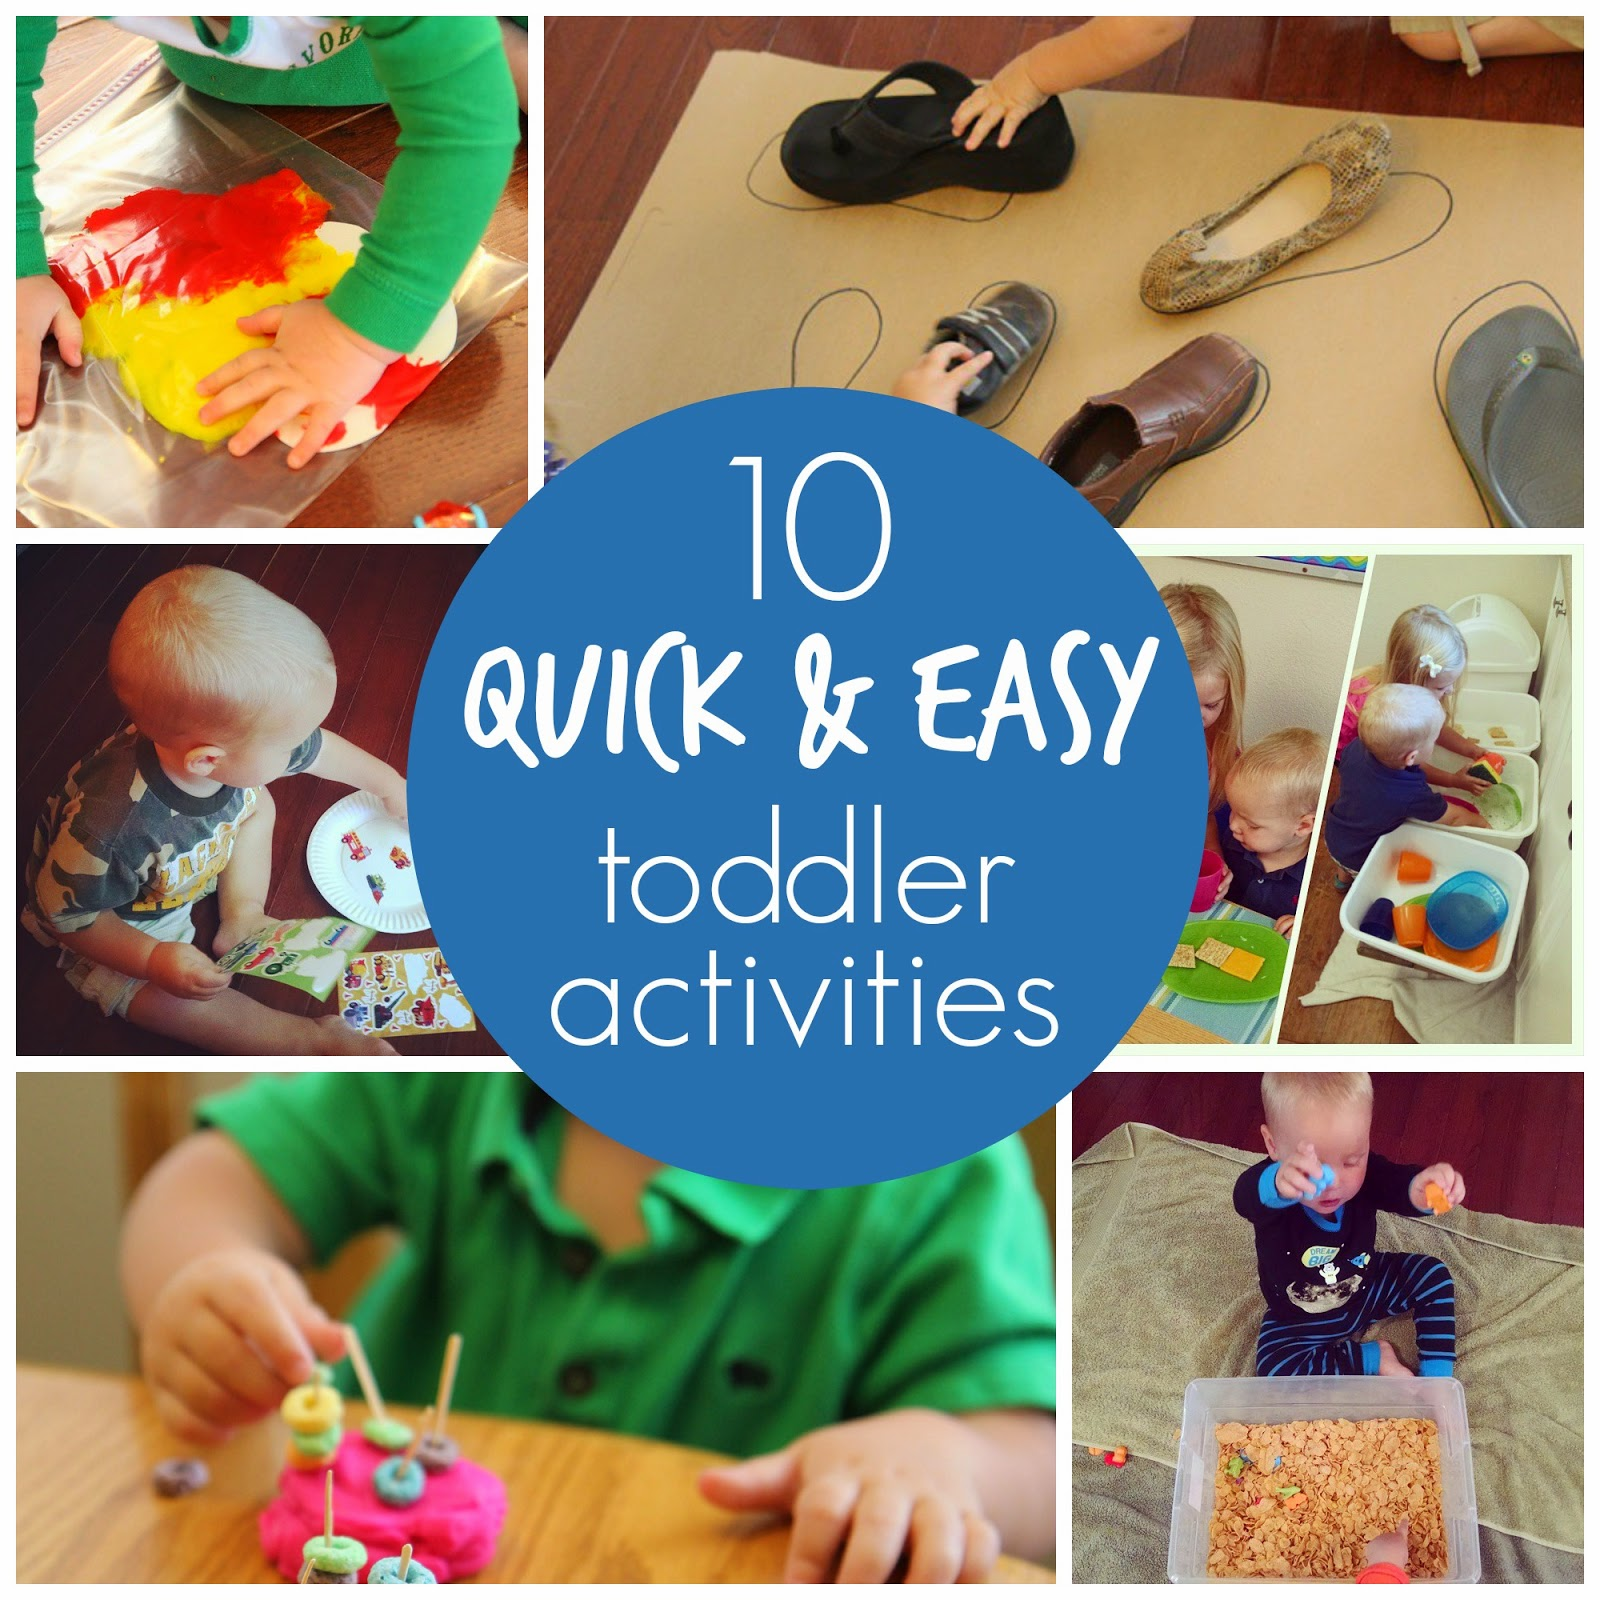 toddler approved 10 quick easy toddler activities